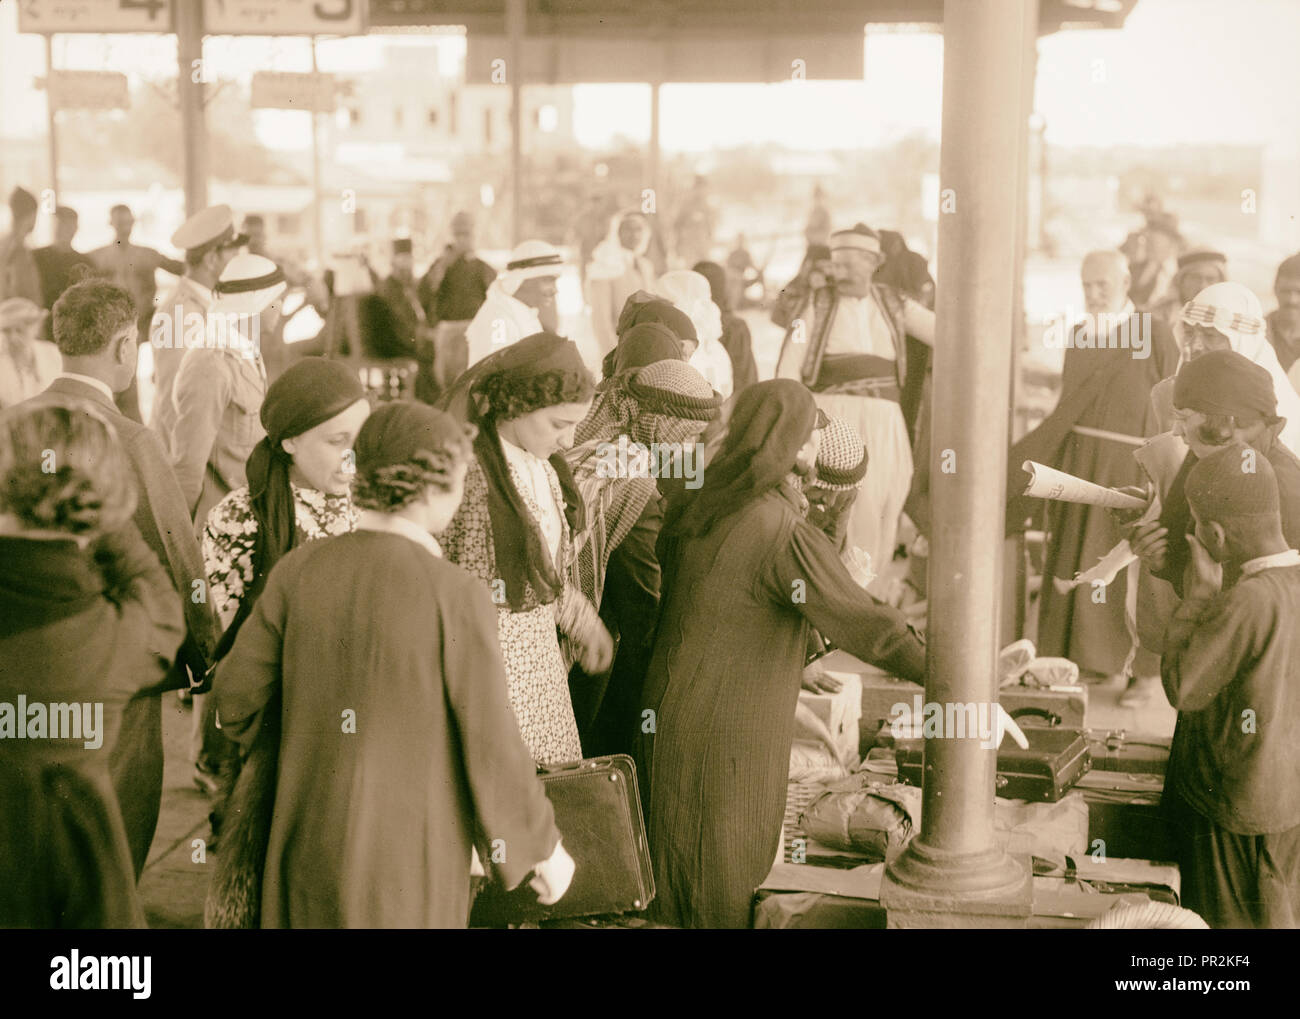 Palestine delegation of Arab ladies leaving Lydda Junction for Cairo, Oct 12, '38. Unposed crowd, claiming baggage - Stock Image